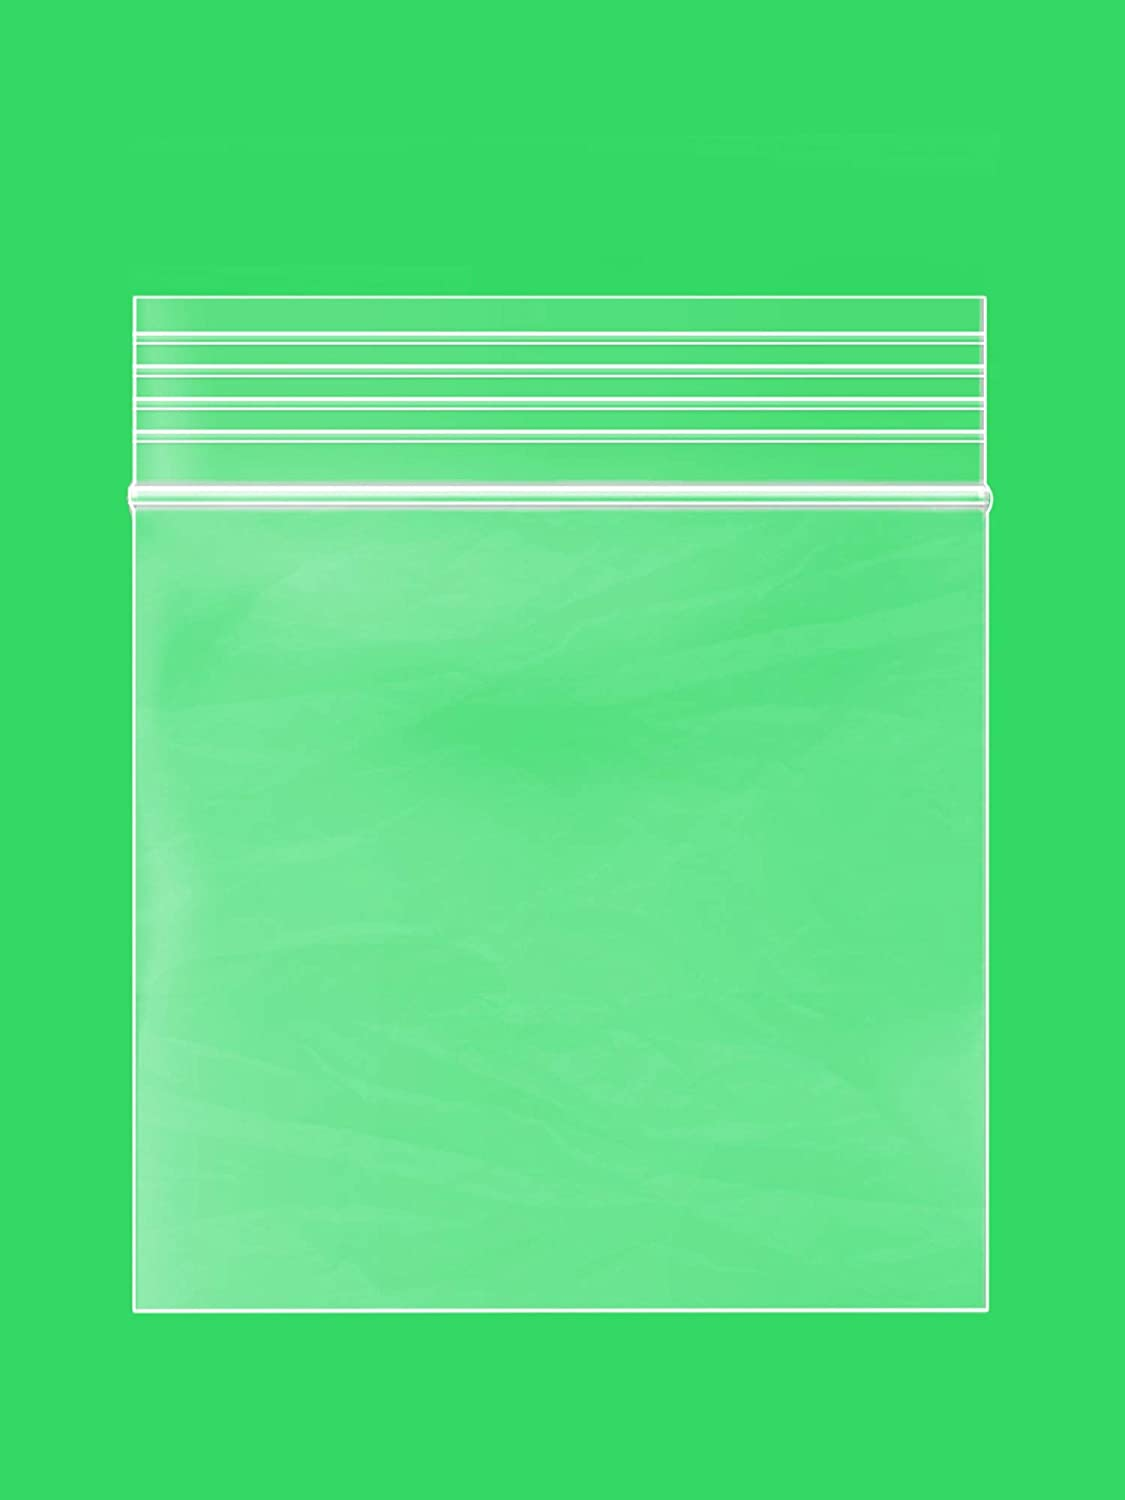 3 x 3 inches, 2Mil Clear Reclosable Zip Lock Bags, case of 1,000 GPI Brand